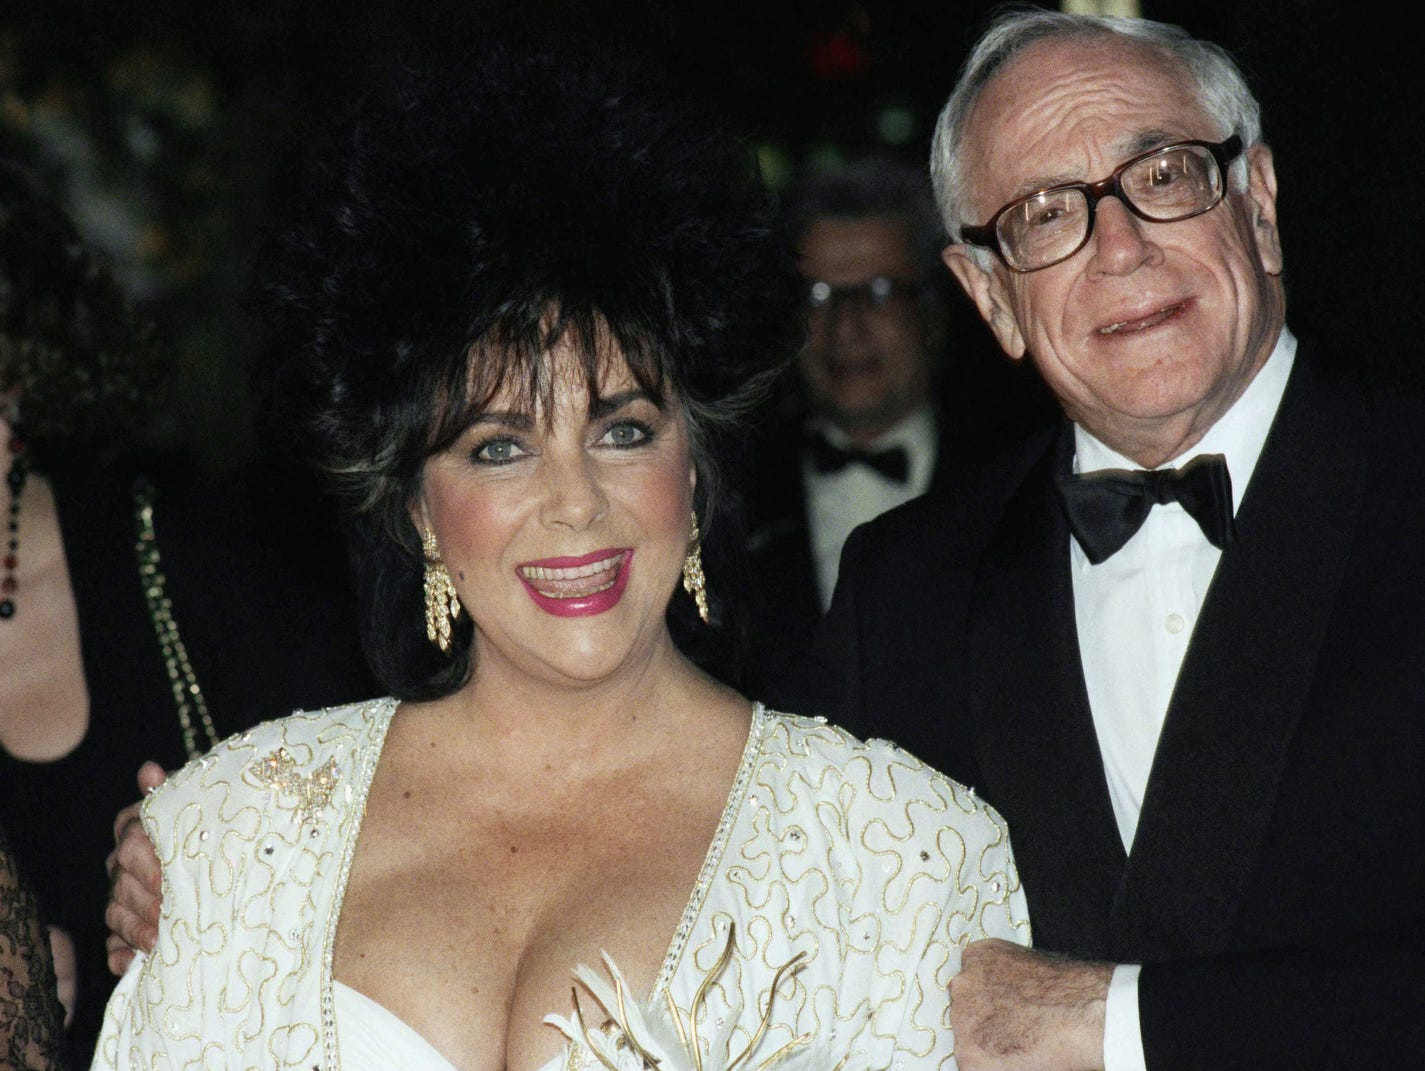 Celebrities joined the movement putting a focus on the dreaded disease.  Actress Elizabeth Taylor and her friend, publisher Malcolm Forbes speak to the press before a dinner at the World Financial Center in New York at night on  Dec. 2, 1989. Taylor was later honored for her contribution in combating AIDS, in observance of World AIDS Day.